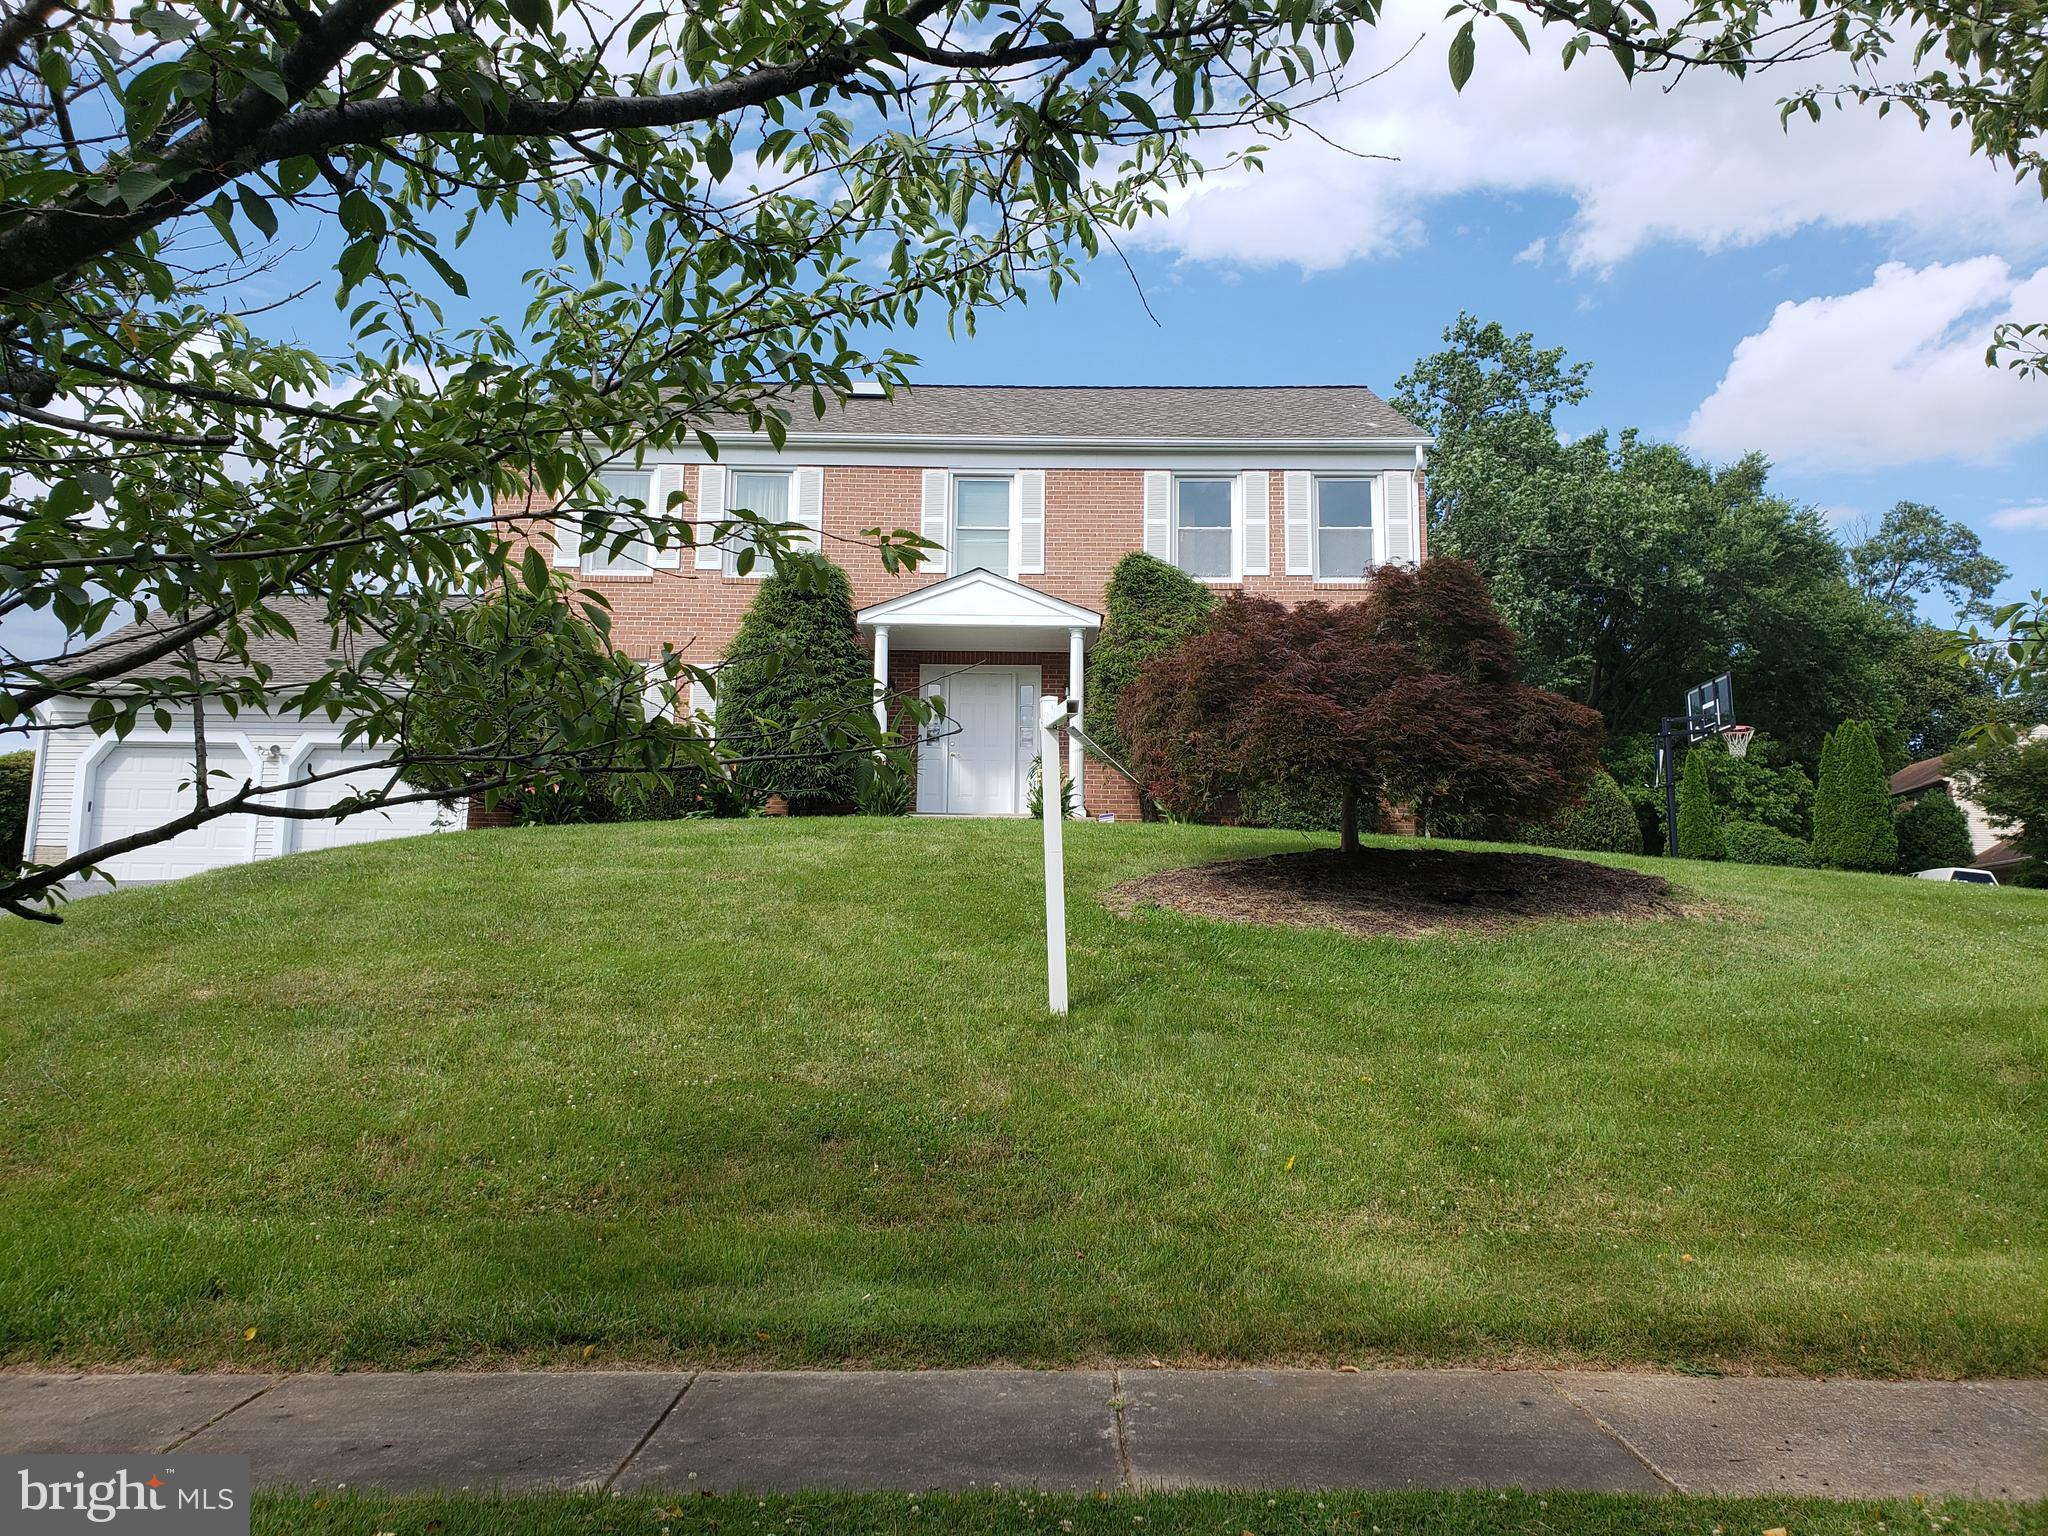 13213 SHERWOOD FOREST DRIVE, SILVER SPRING, MD 20904